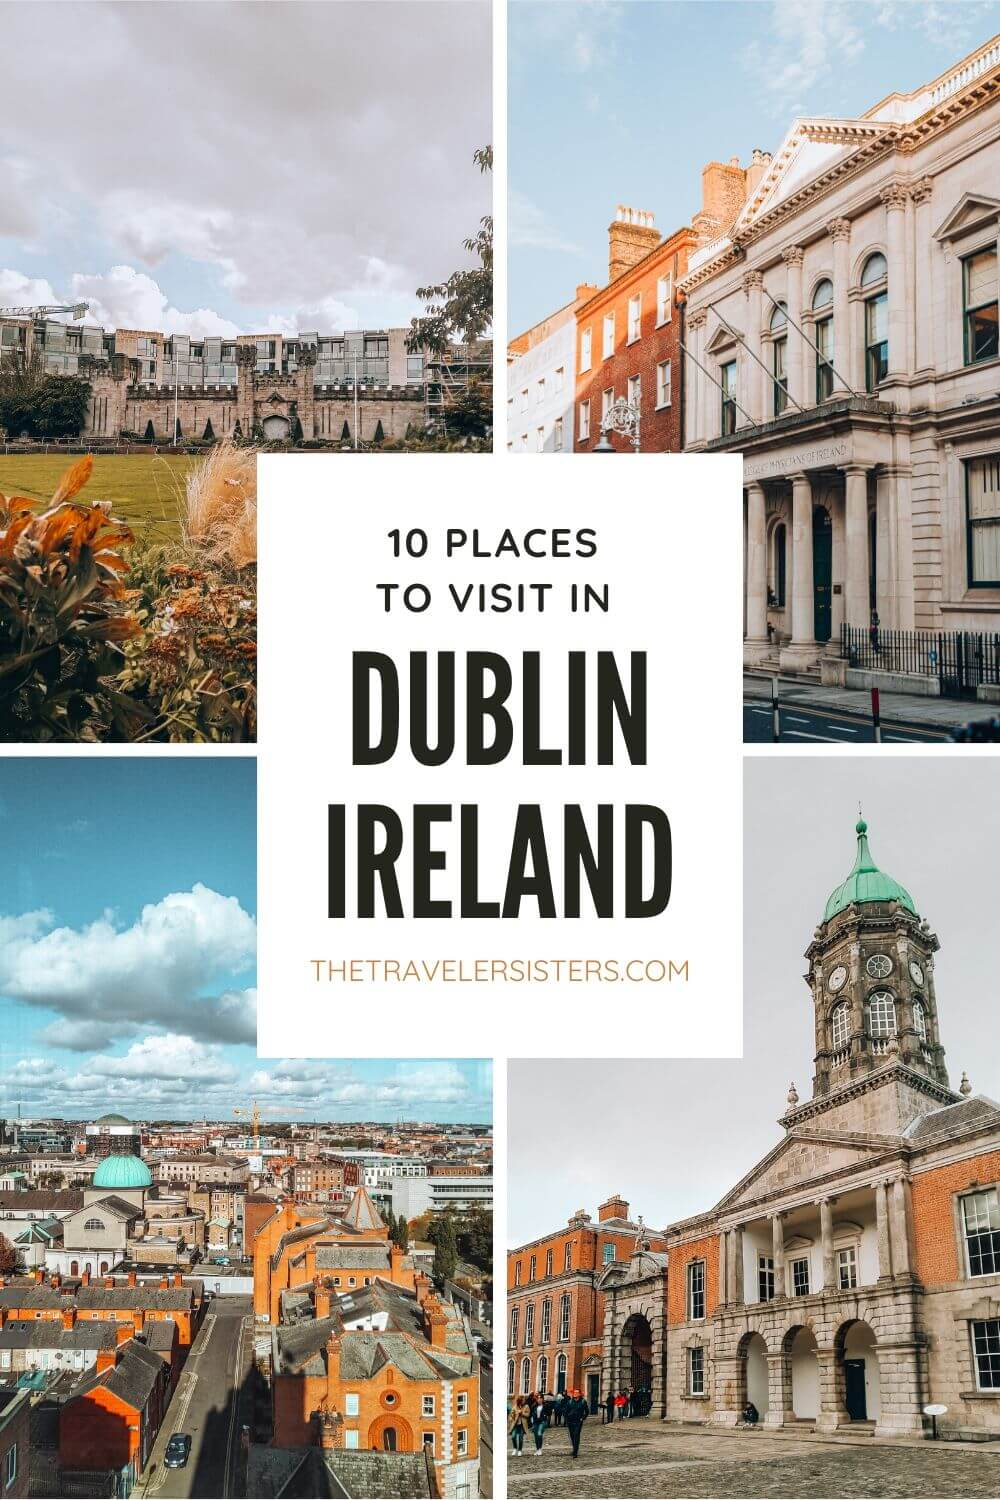 10 places to visit in dublin